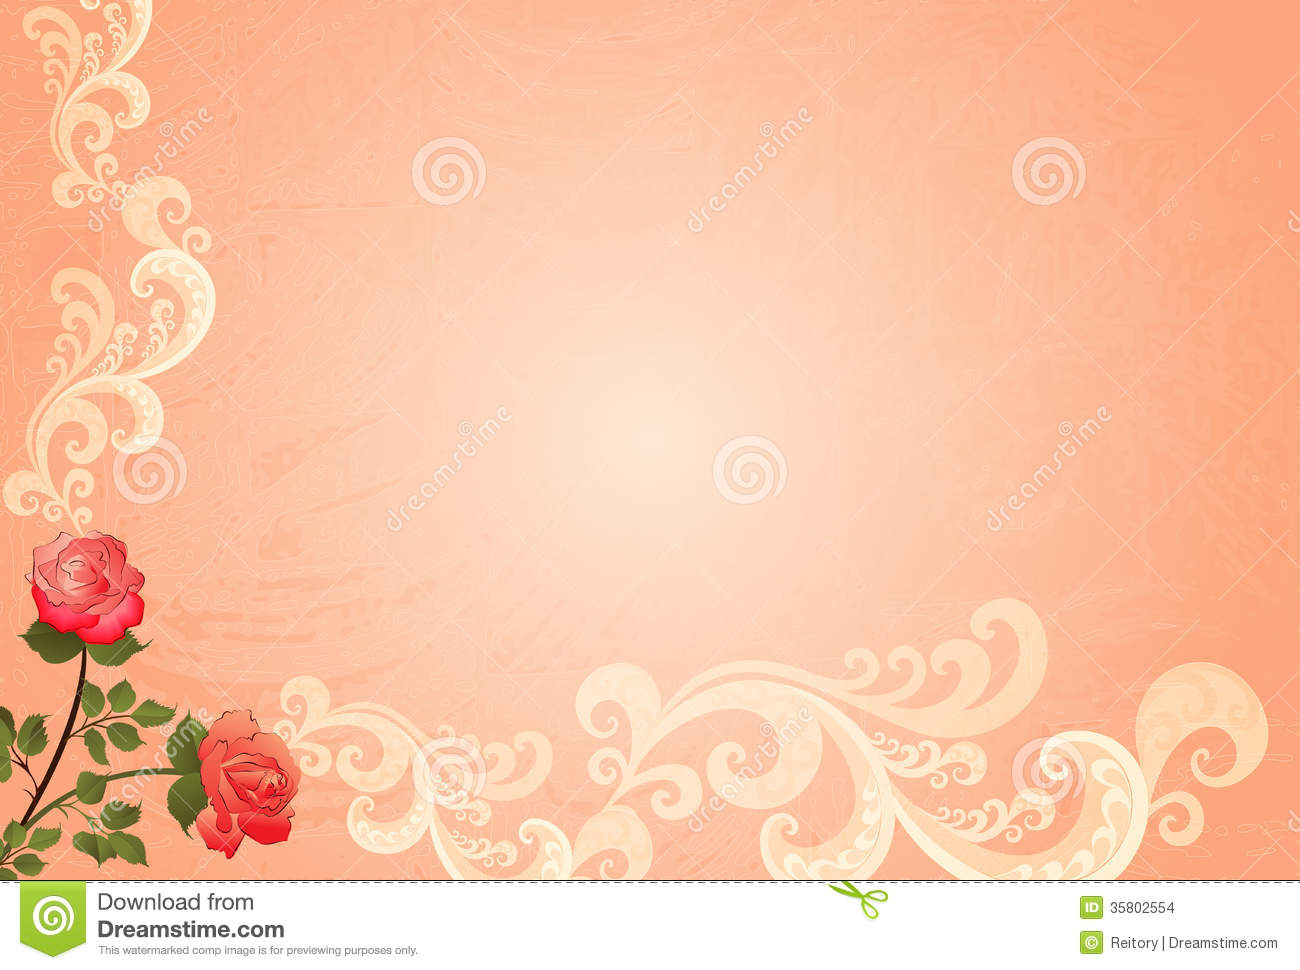 Free Download Peach Color Wallpaper Grungy Background Peach